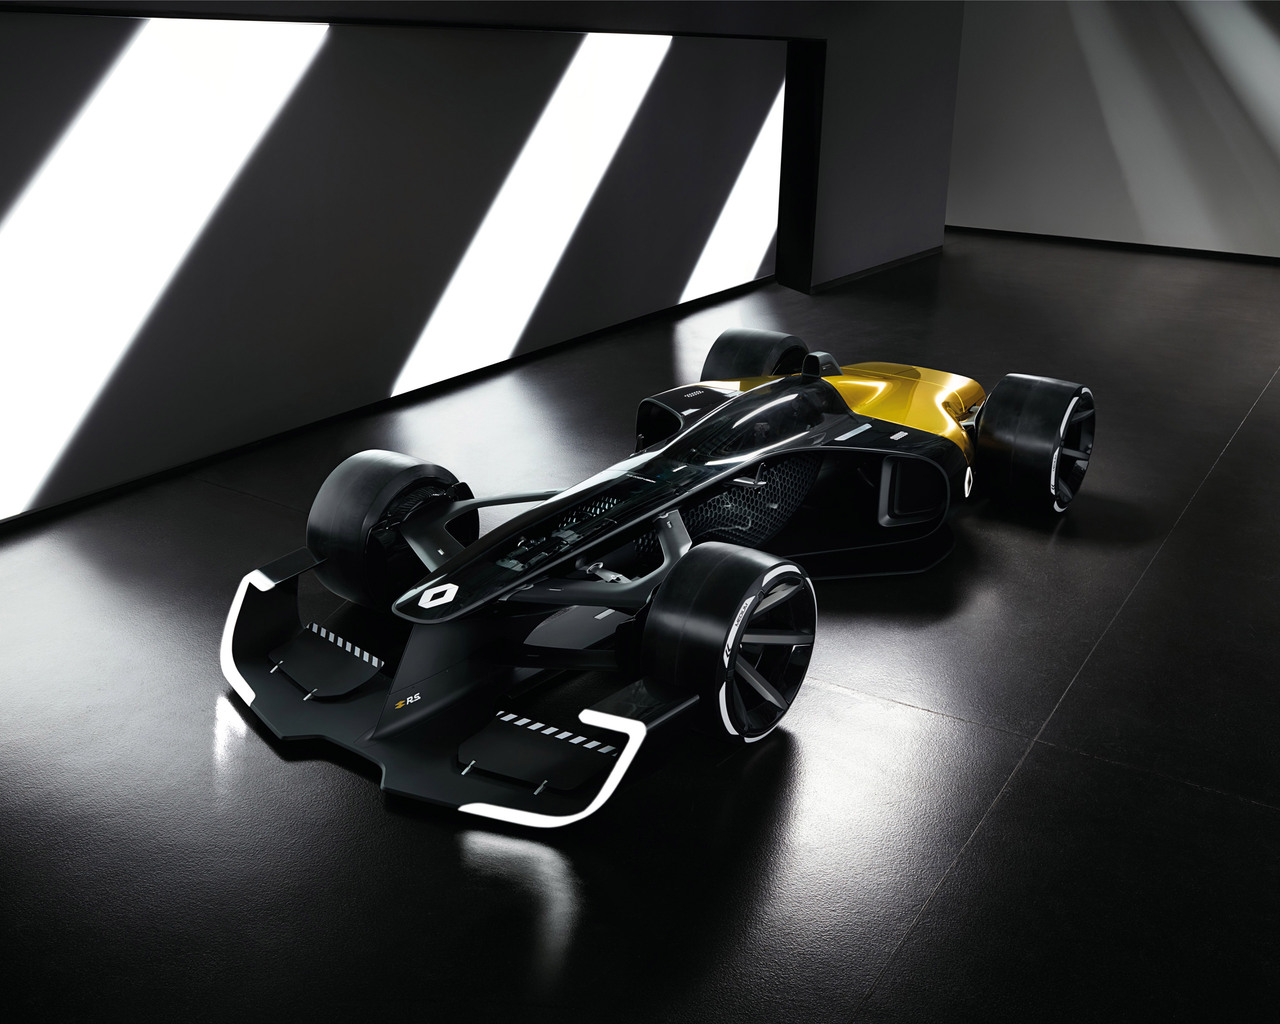 renault-rs-2027-vision-concept-hd.jpg